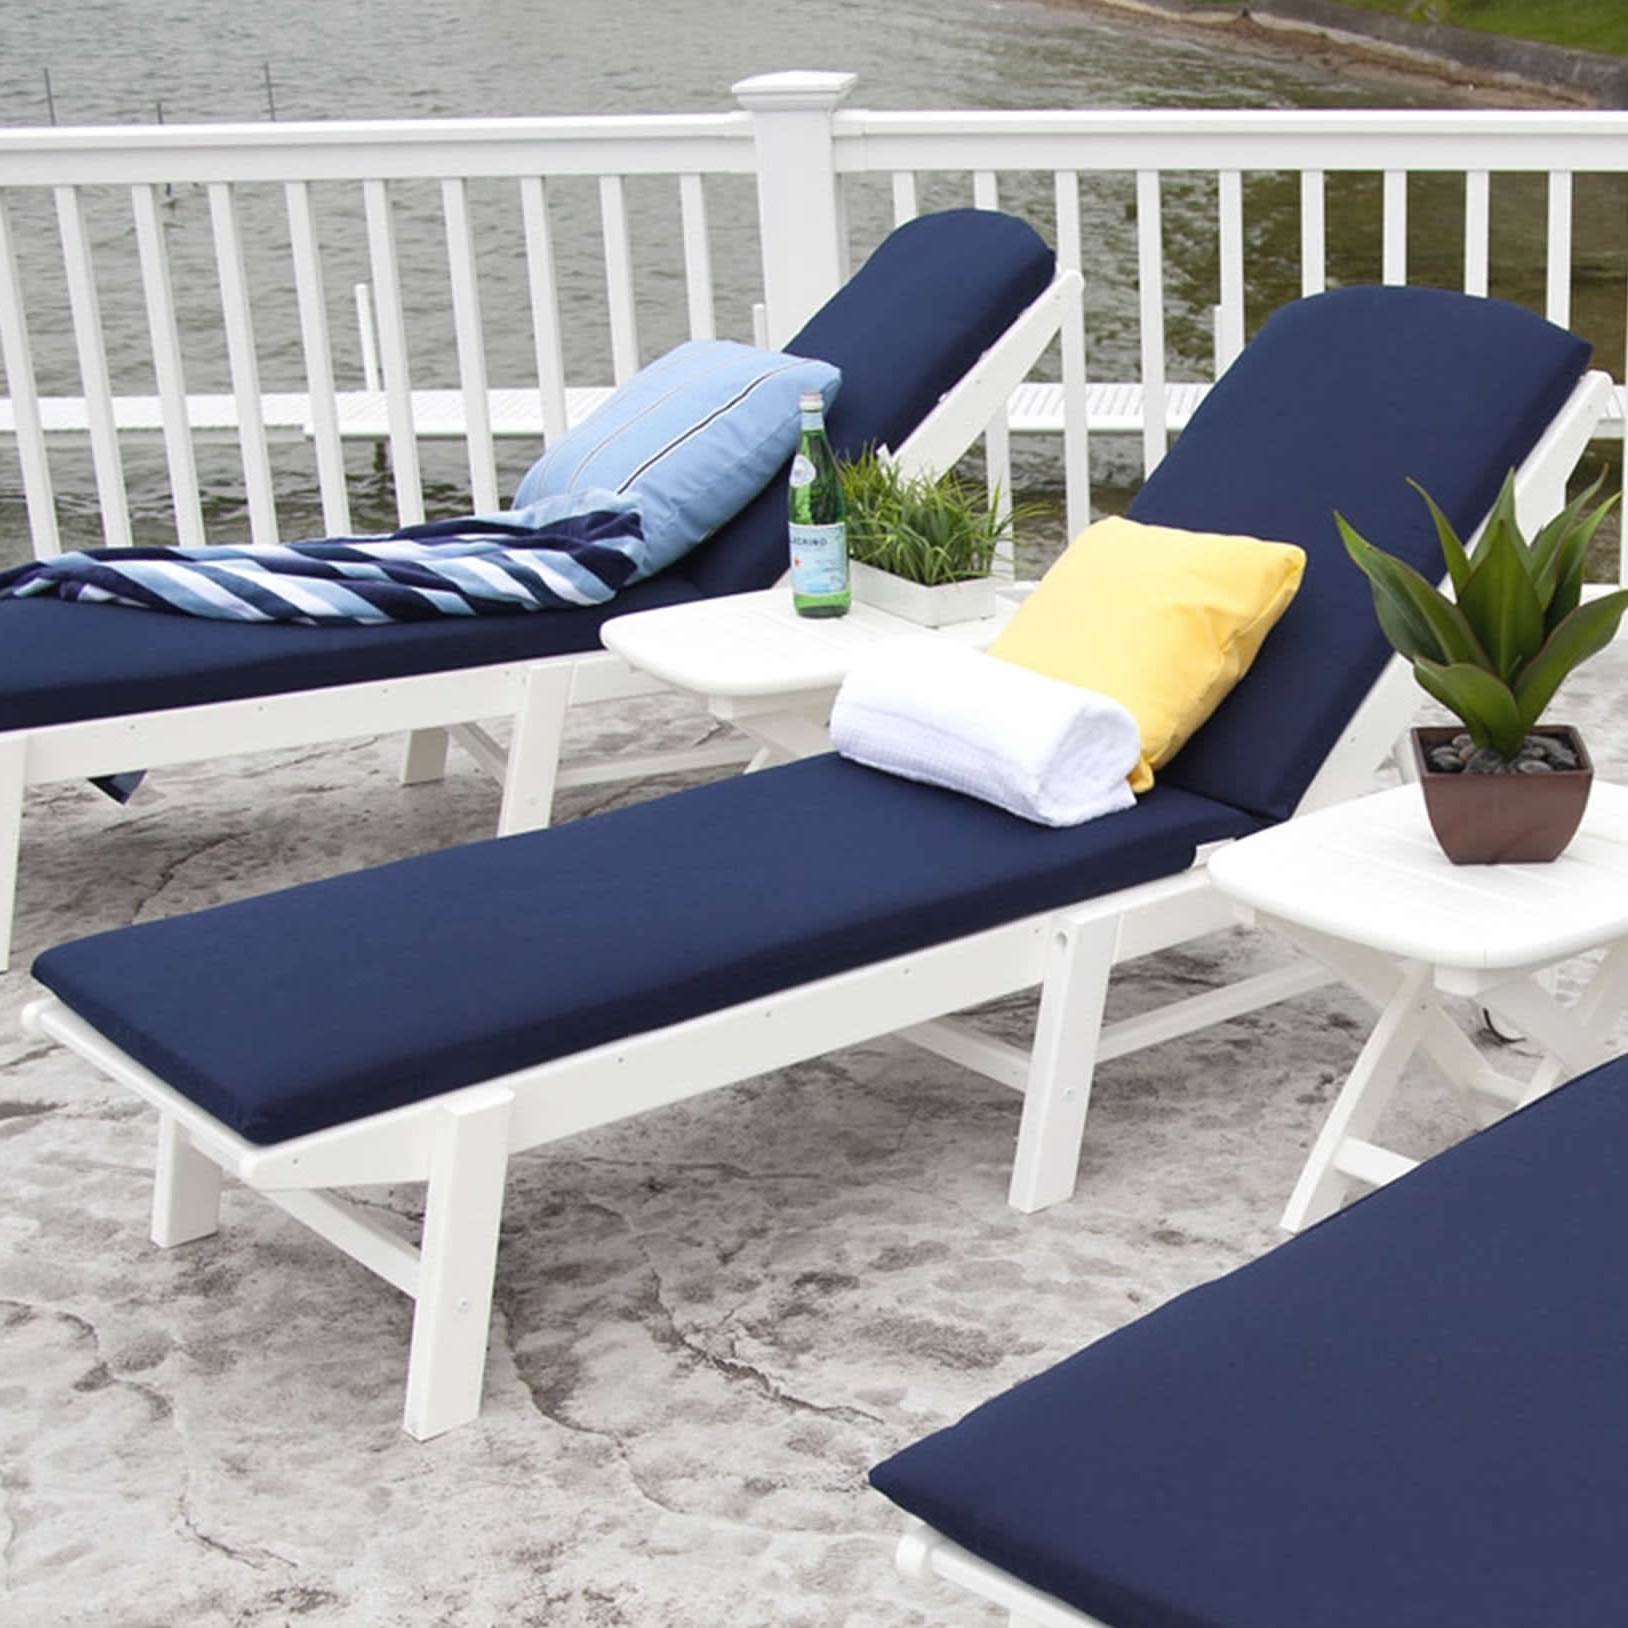 Chaise Lounge Cushions Pertaining To Favorite Polywood Nautical Chaise Lounge Cushions (View 1 of 15)